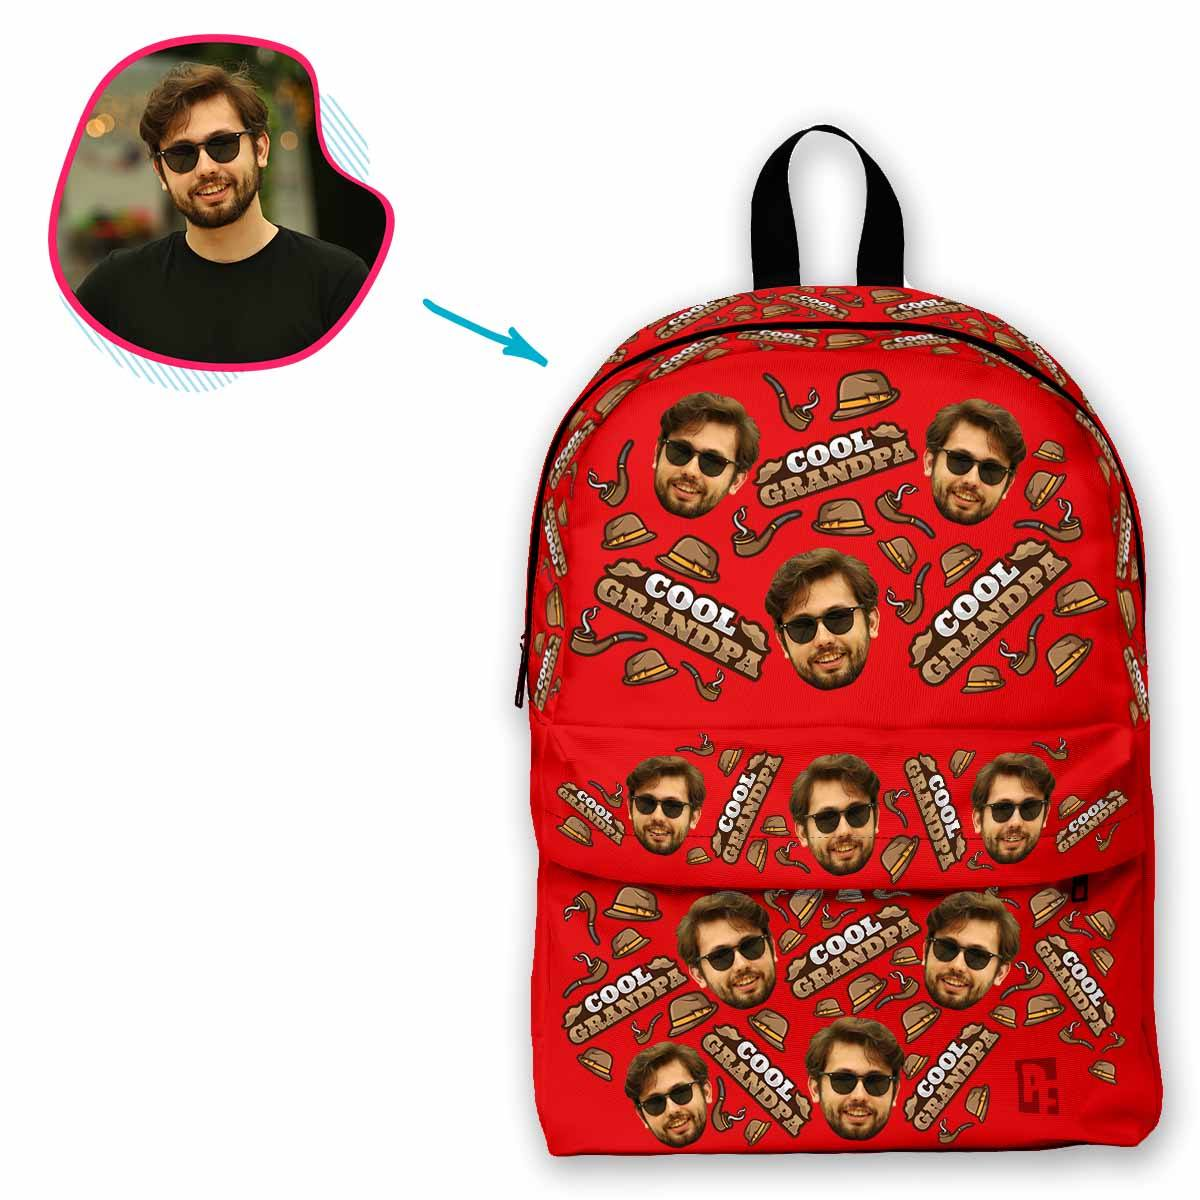 red Cool Grandfather classic backpack personalized with photo of face printed on it